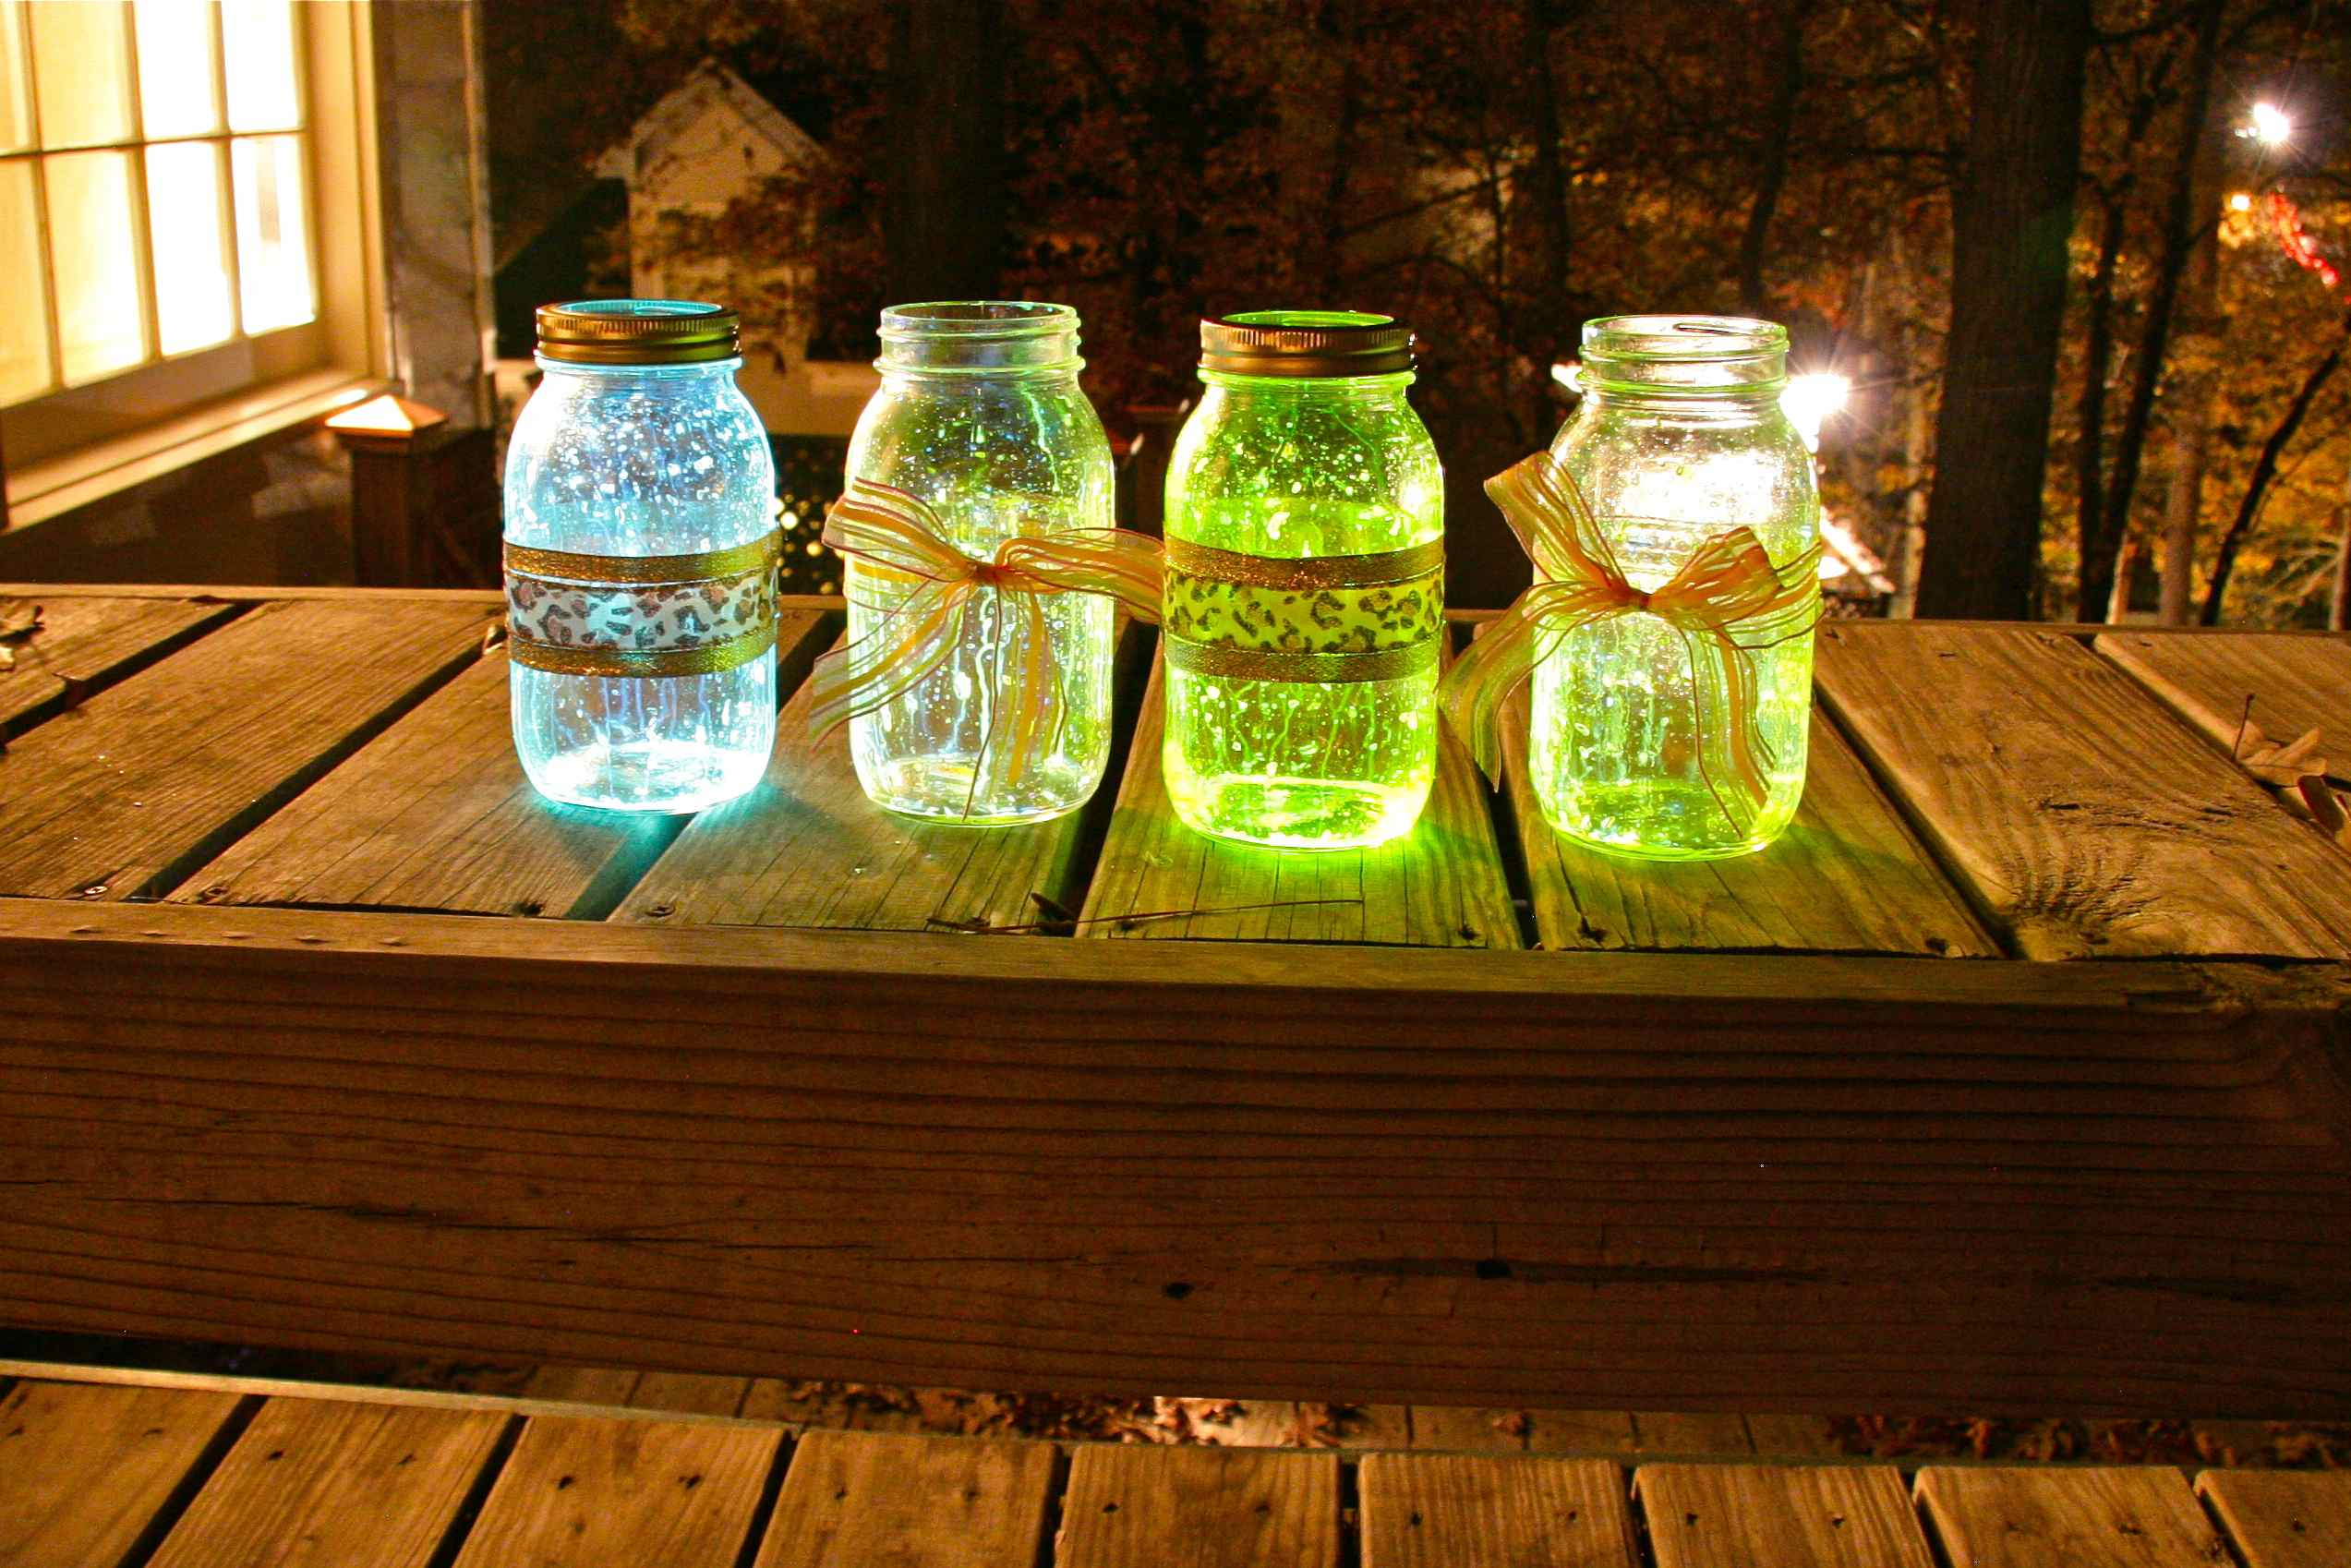 How to Make Easy Glow in the Dark Mason Jars